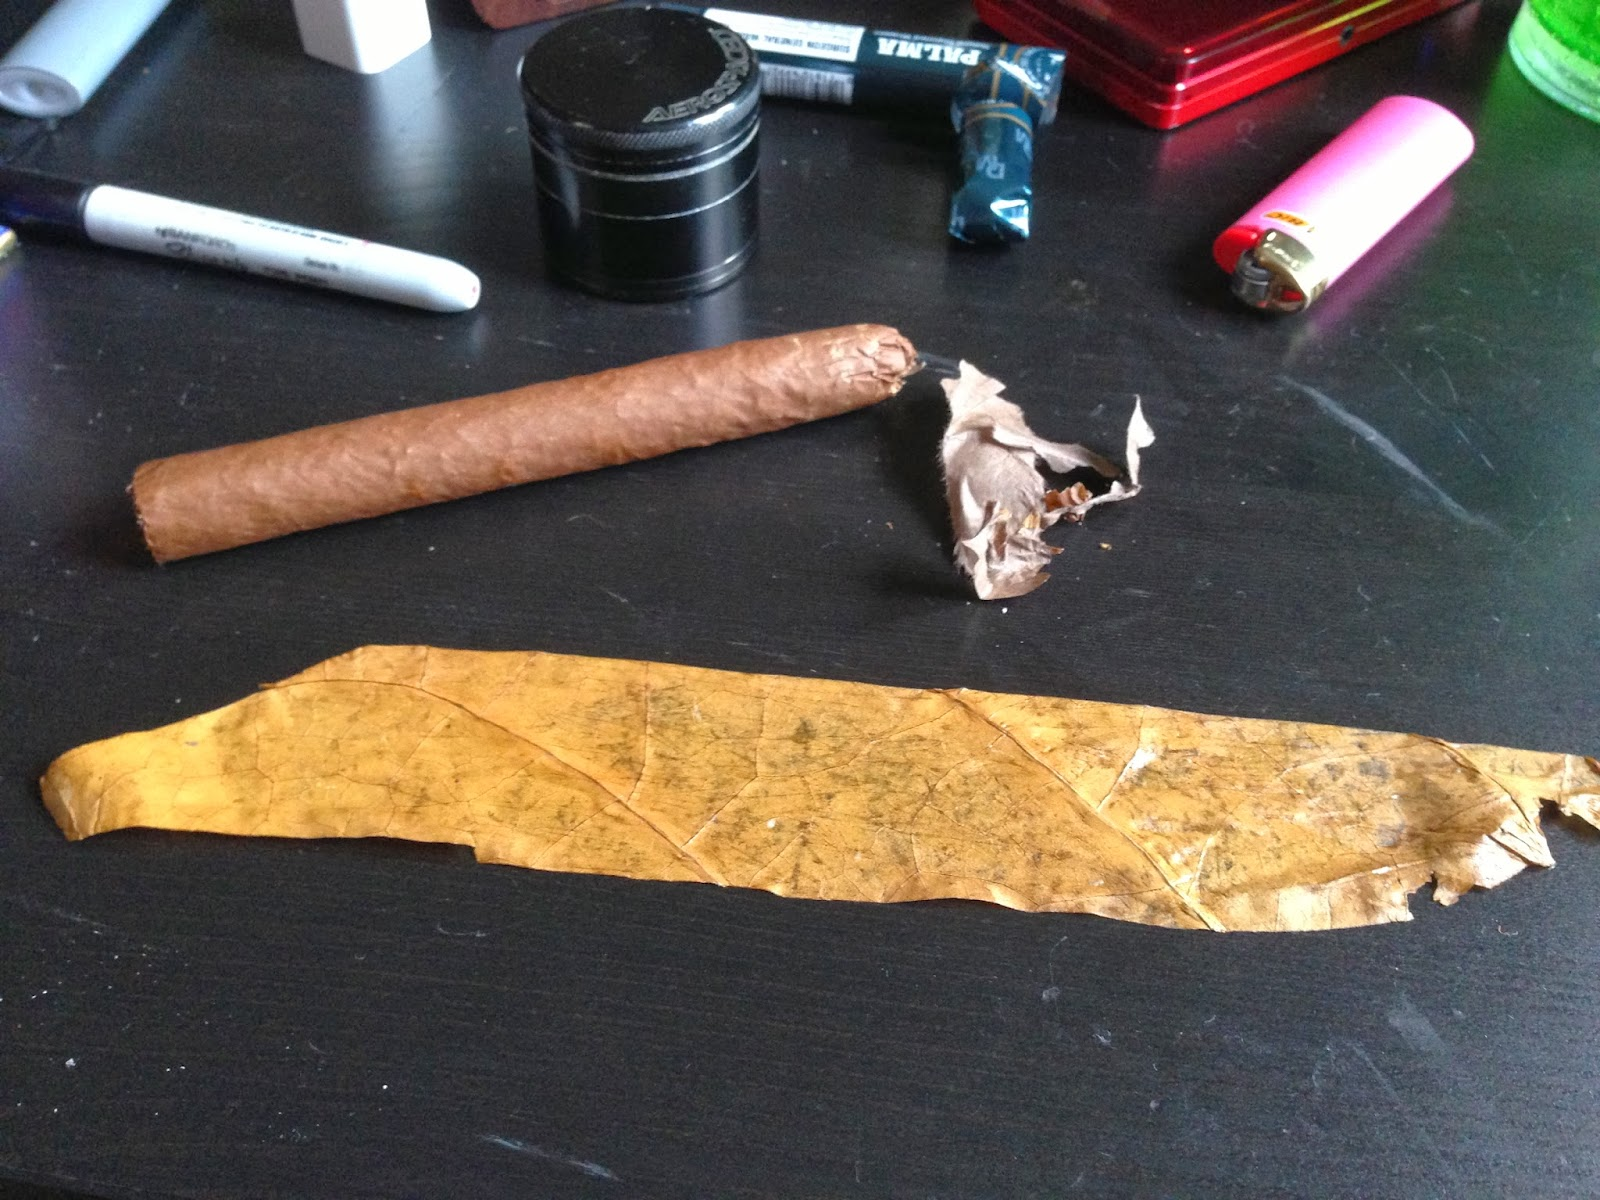 What is the purpose of cancer paper on cigars?